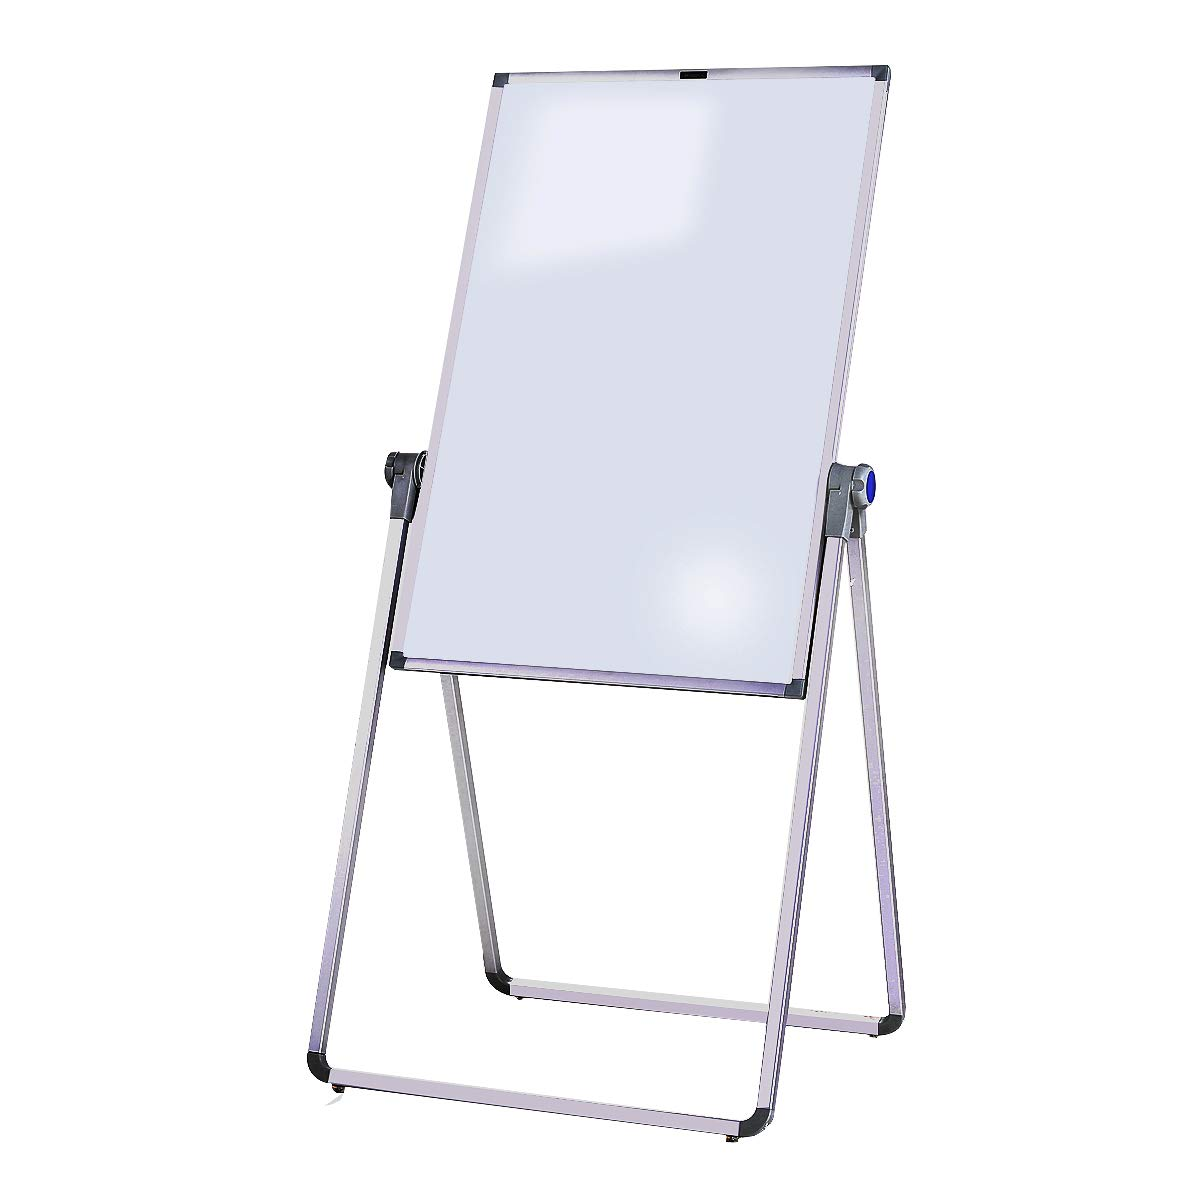 ZHIDIAN White Boards Magnetic Dry Erase Boards 